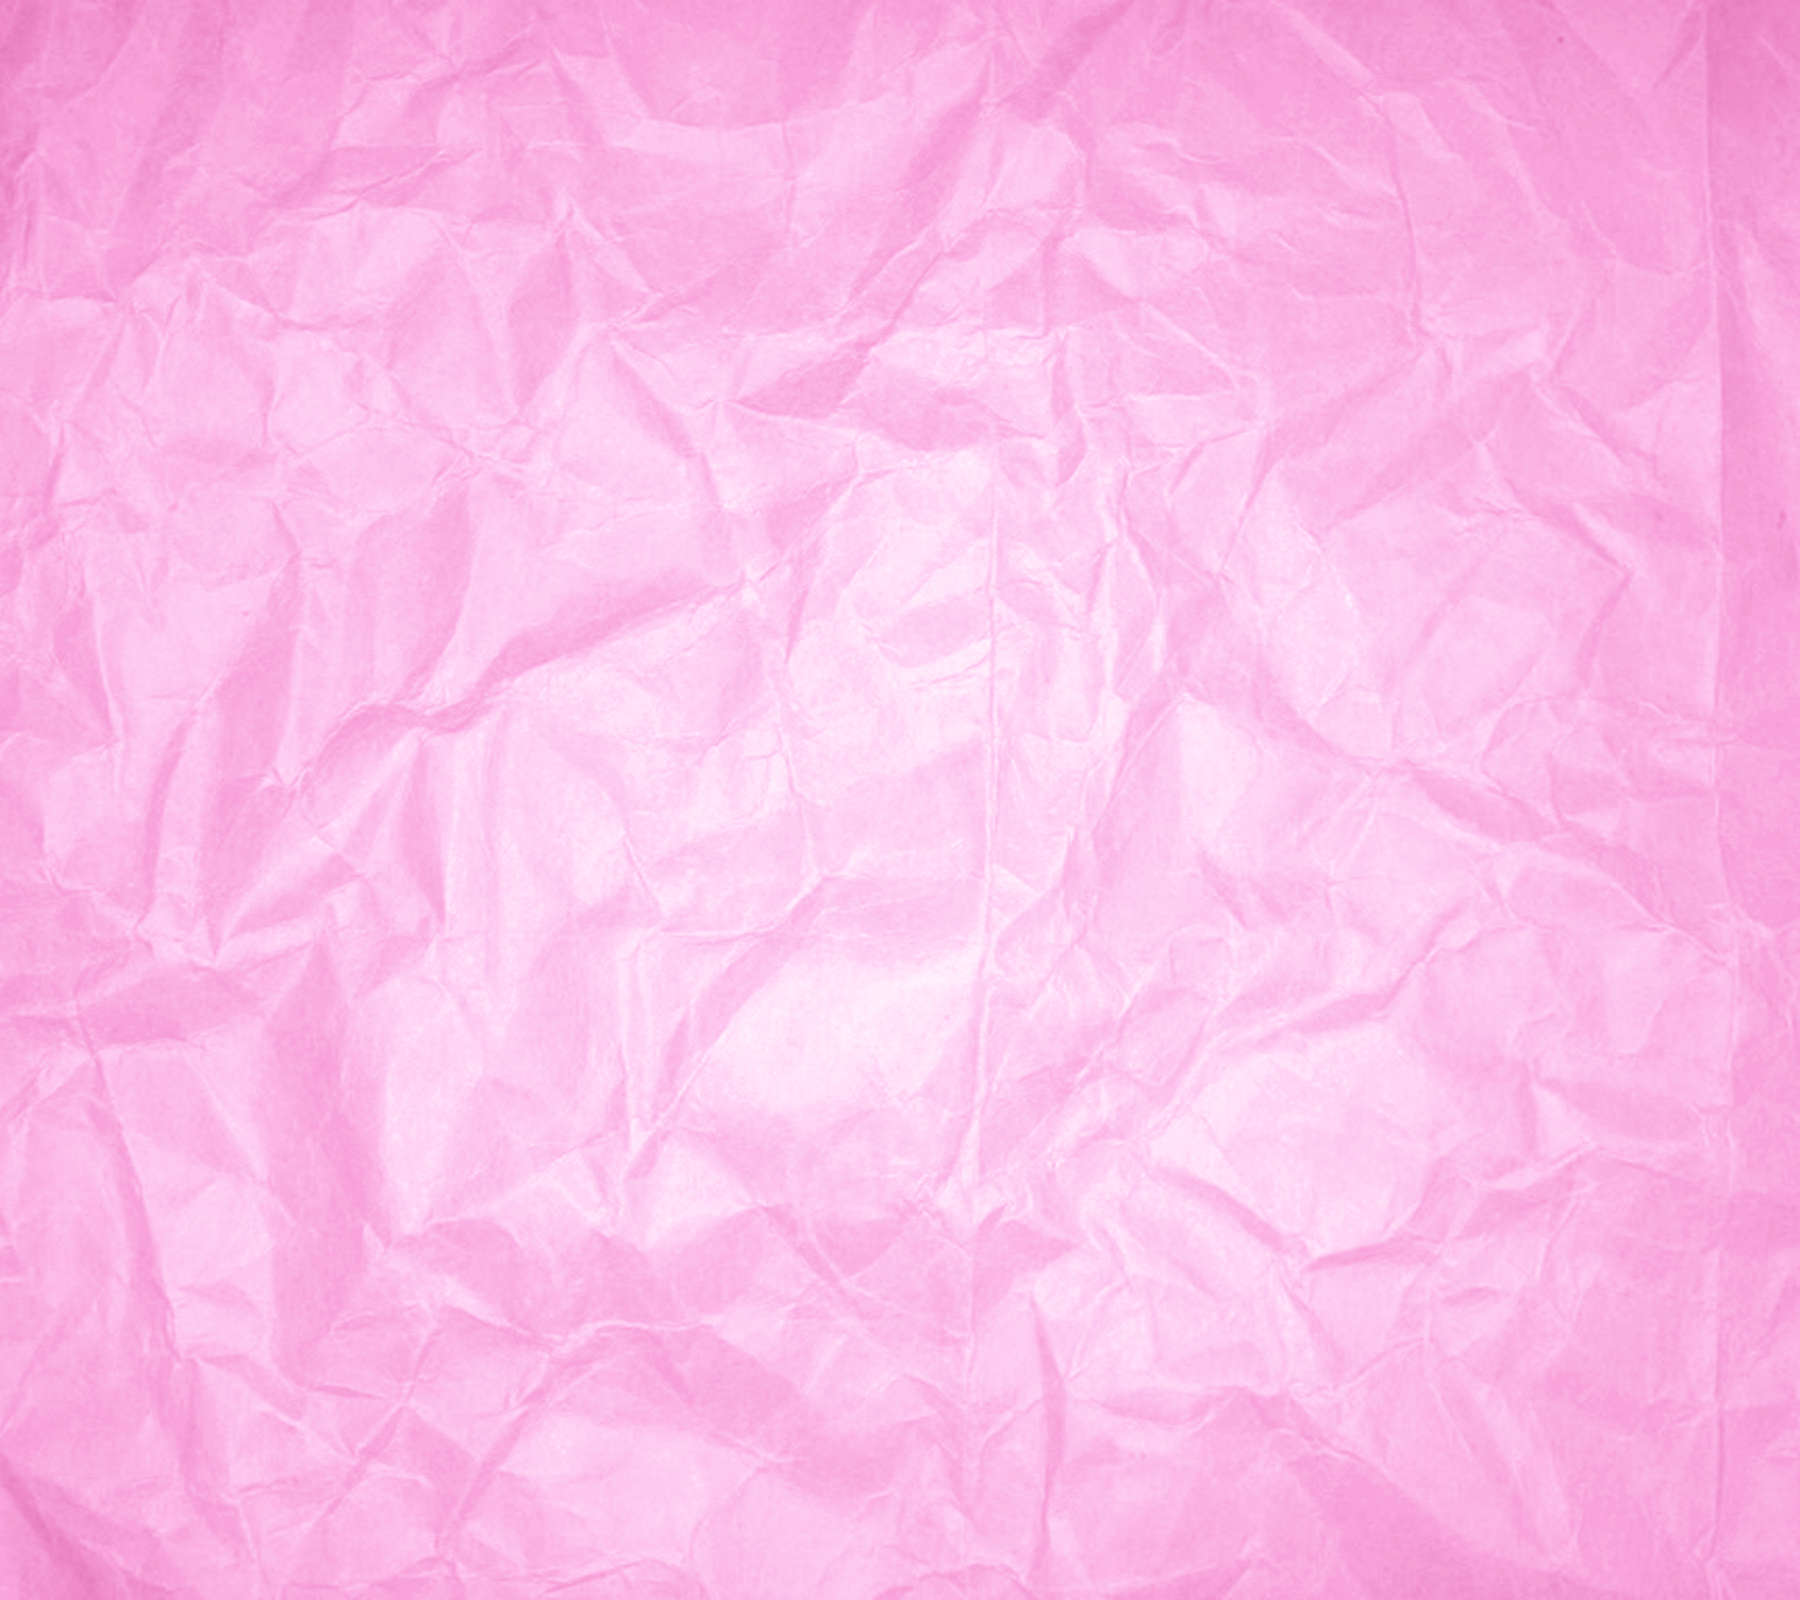 Free Download Wrinkled Pink Paper Background 1800x1600 Background